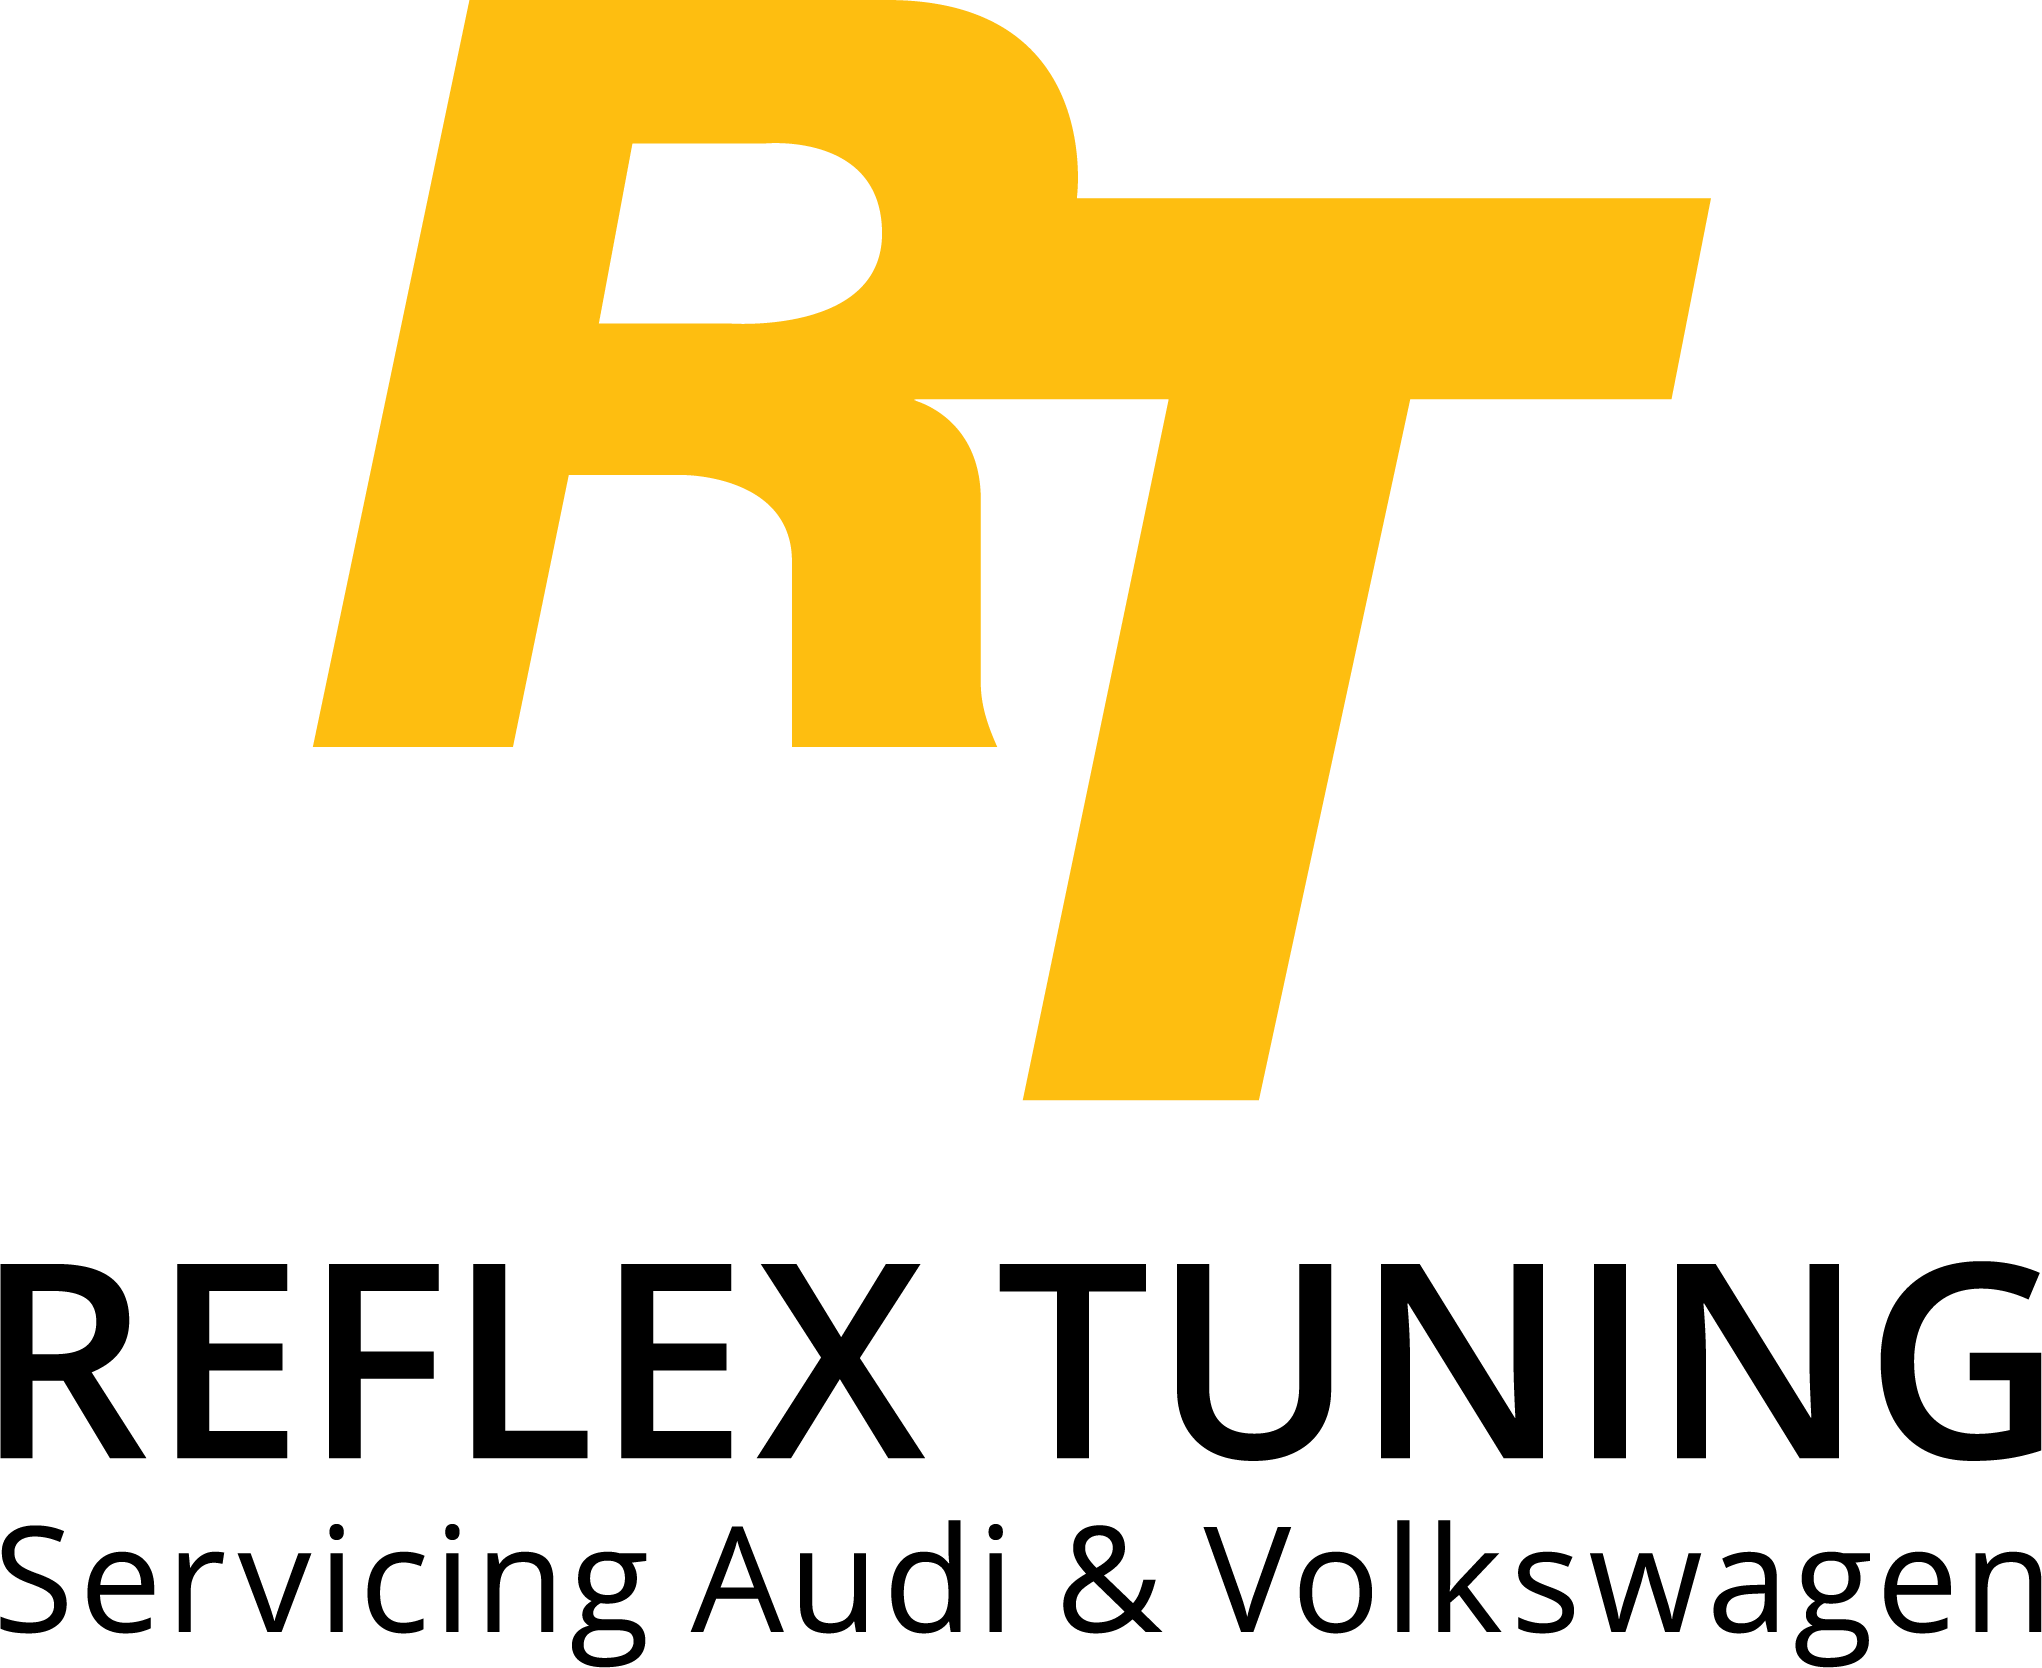 Free Carfax for My Car New Free Carfax Maintenance History for Your Audi or Vw Reflex Tuning